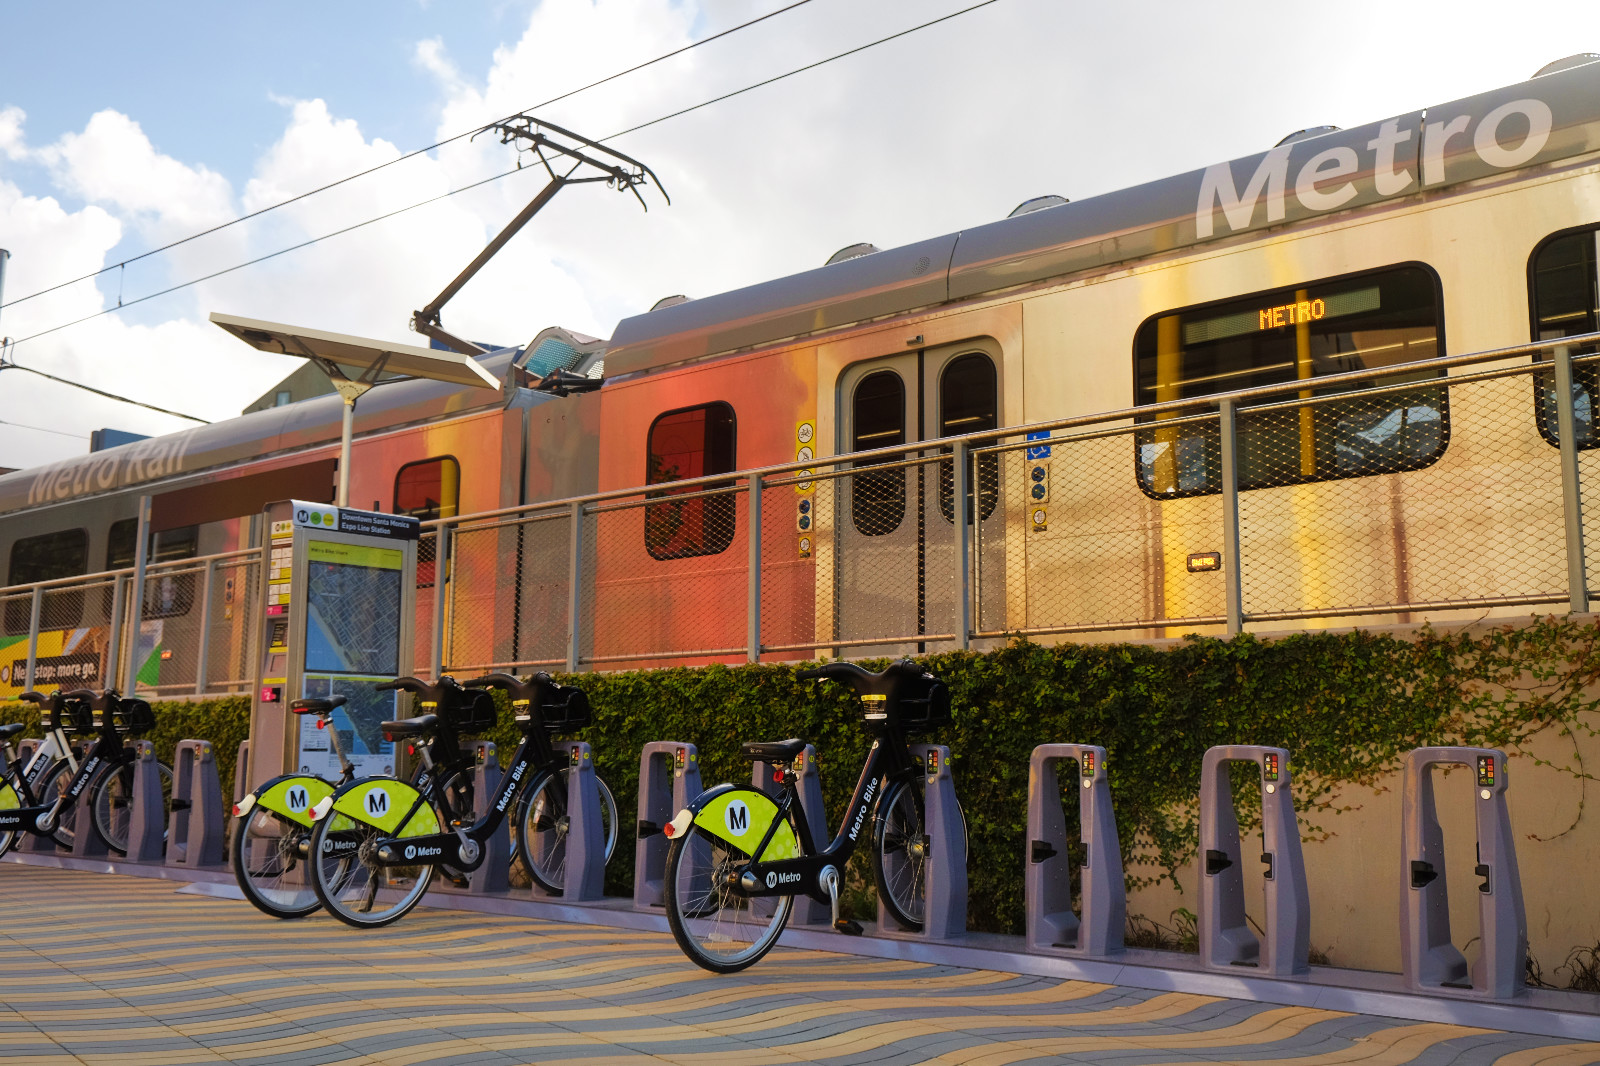 Metro Rail. Photo by Kyle Ramey of Bikabout